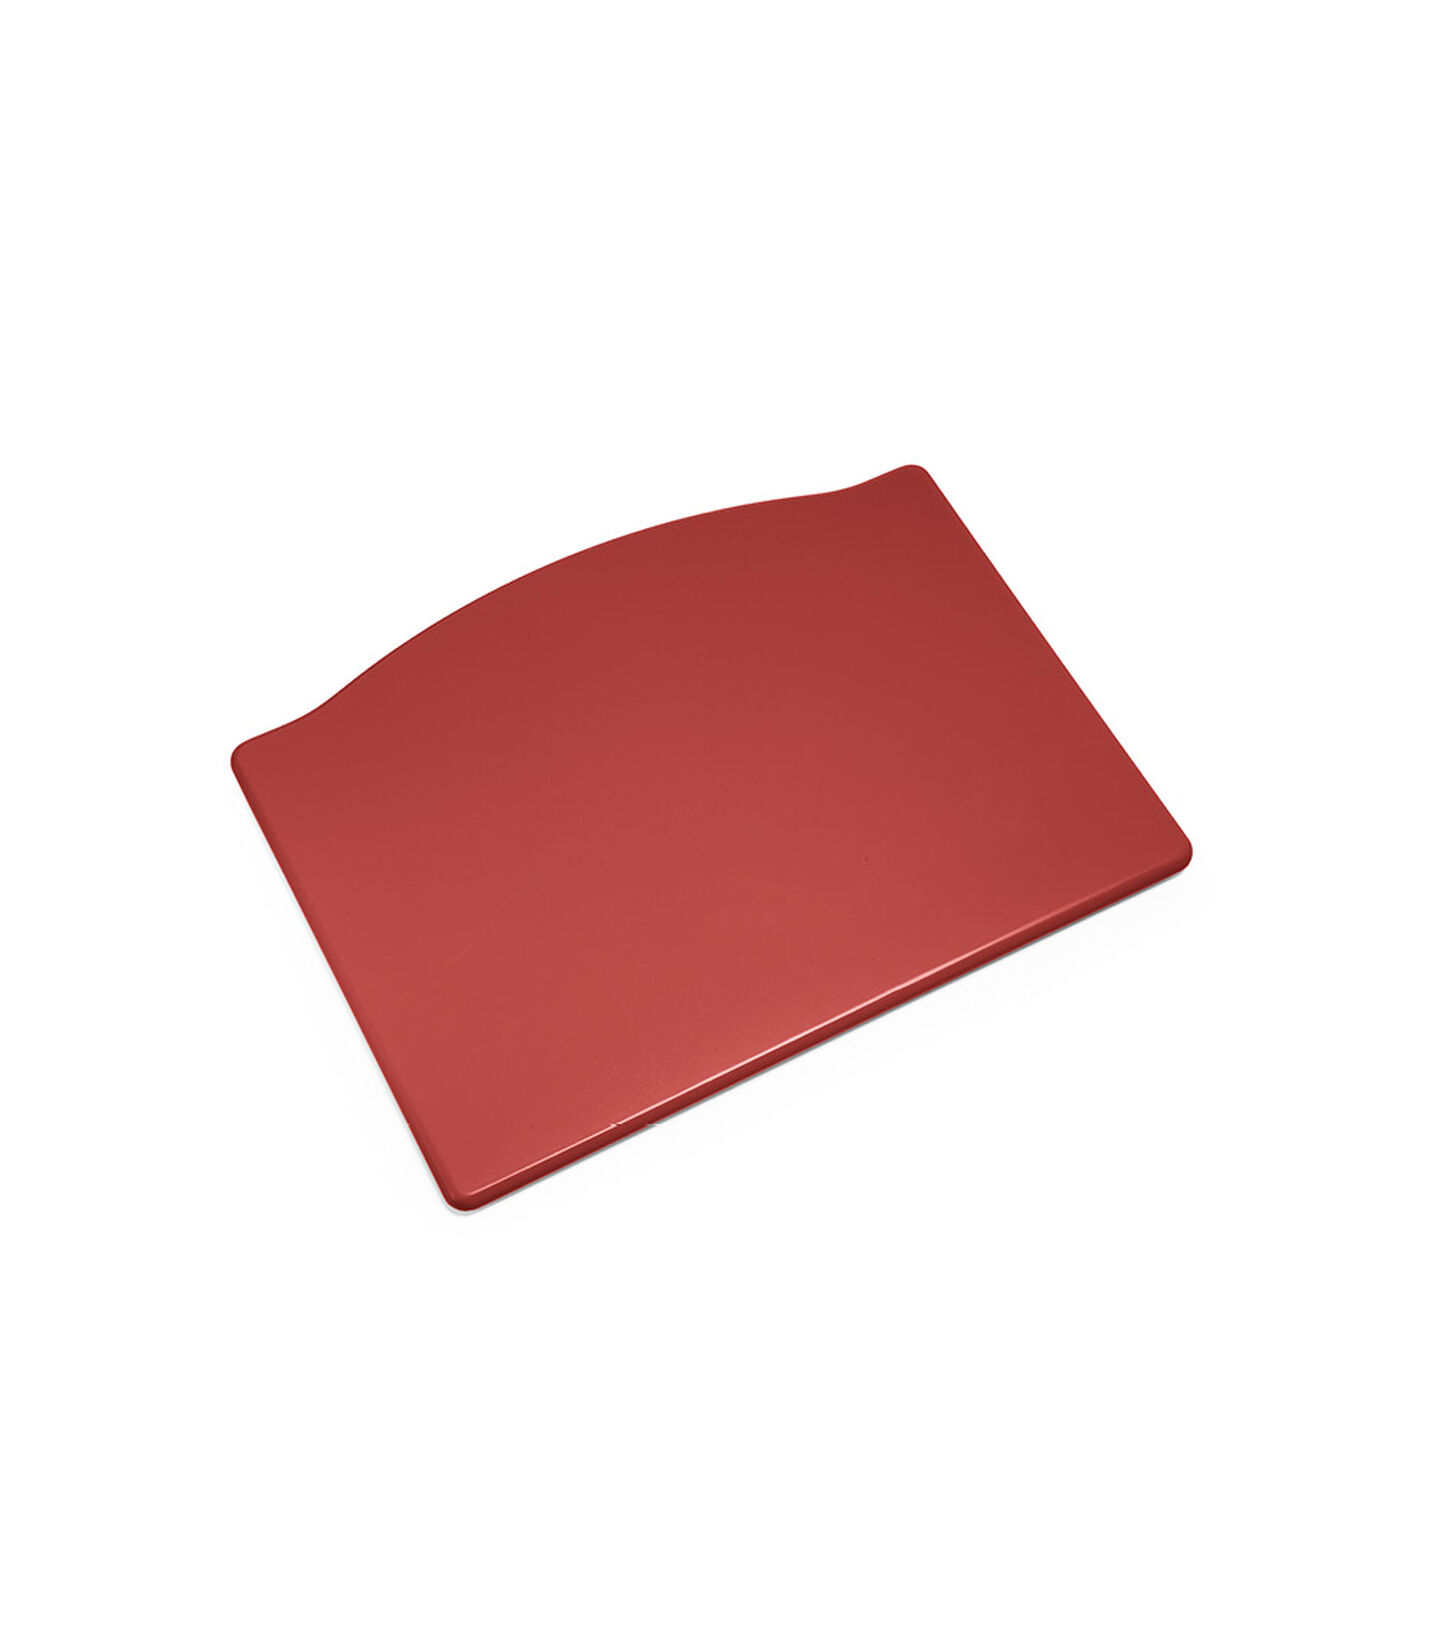 Repose pieds Tripp Trapp® Rouge chaud, Rouge chaud, mainview view 1